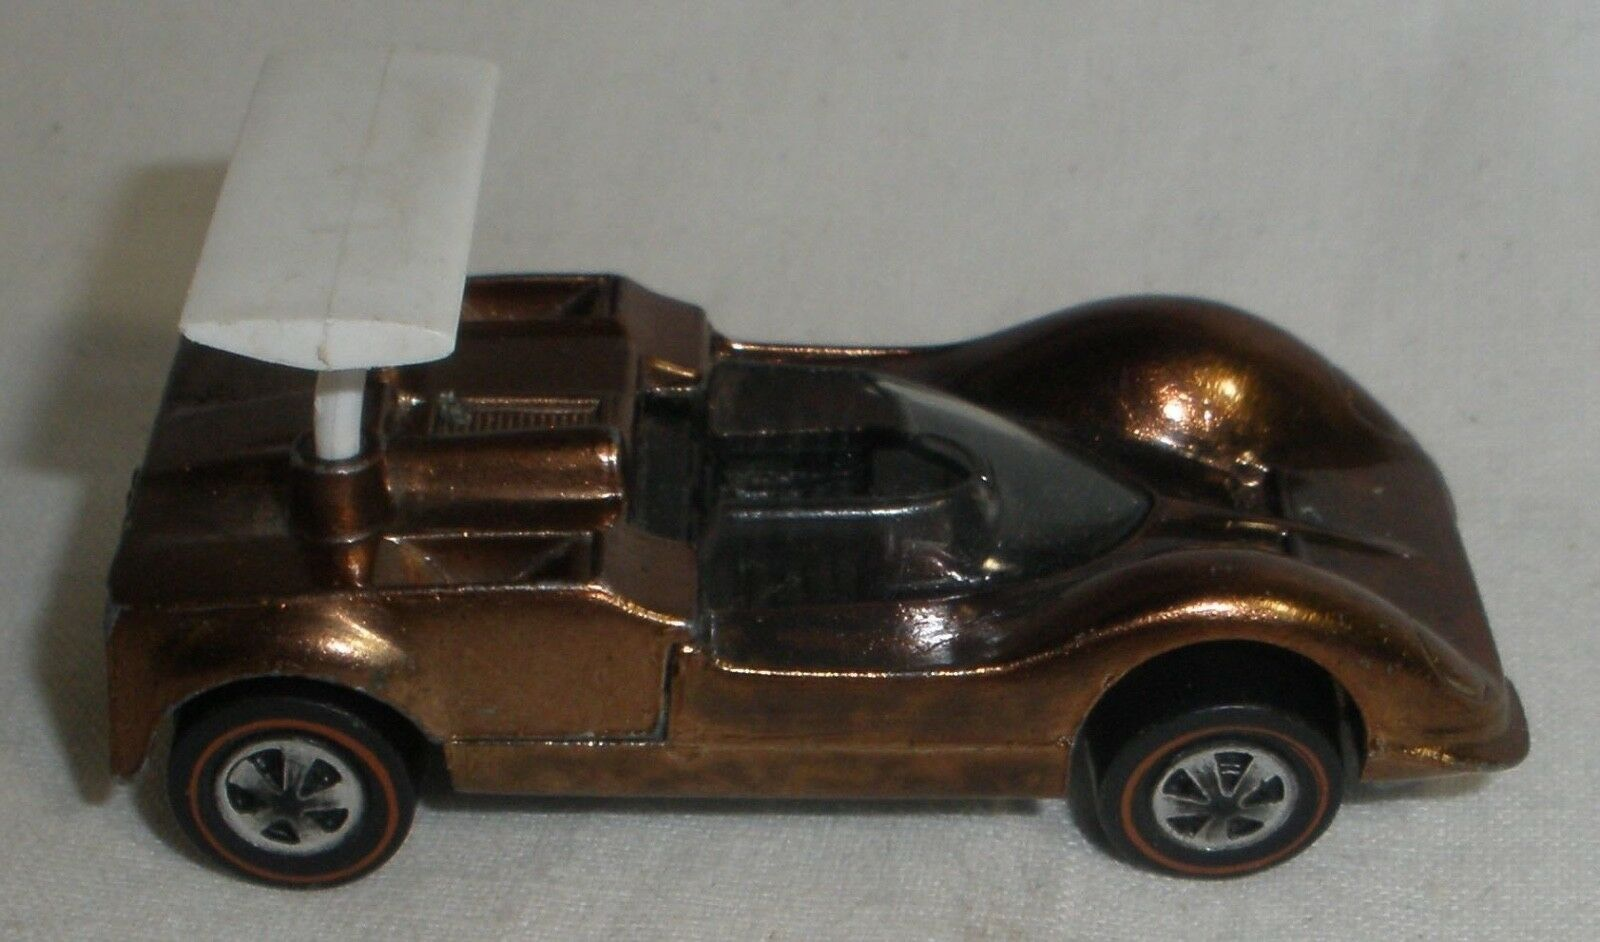 Hot Wheels redline Chaparral brown Collectors Quality condition